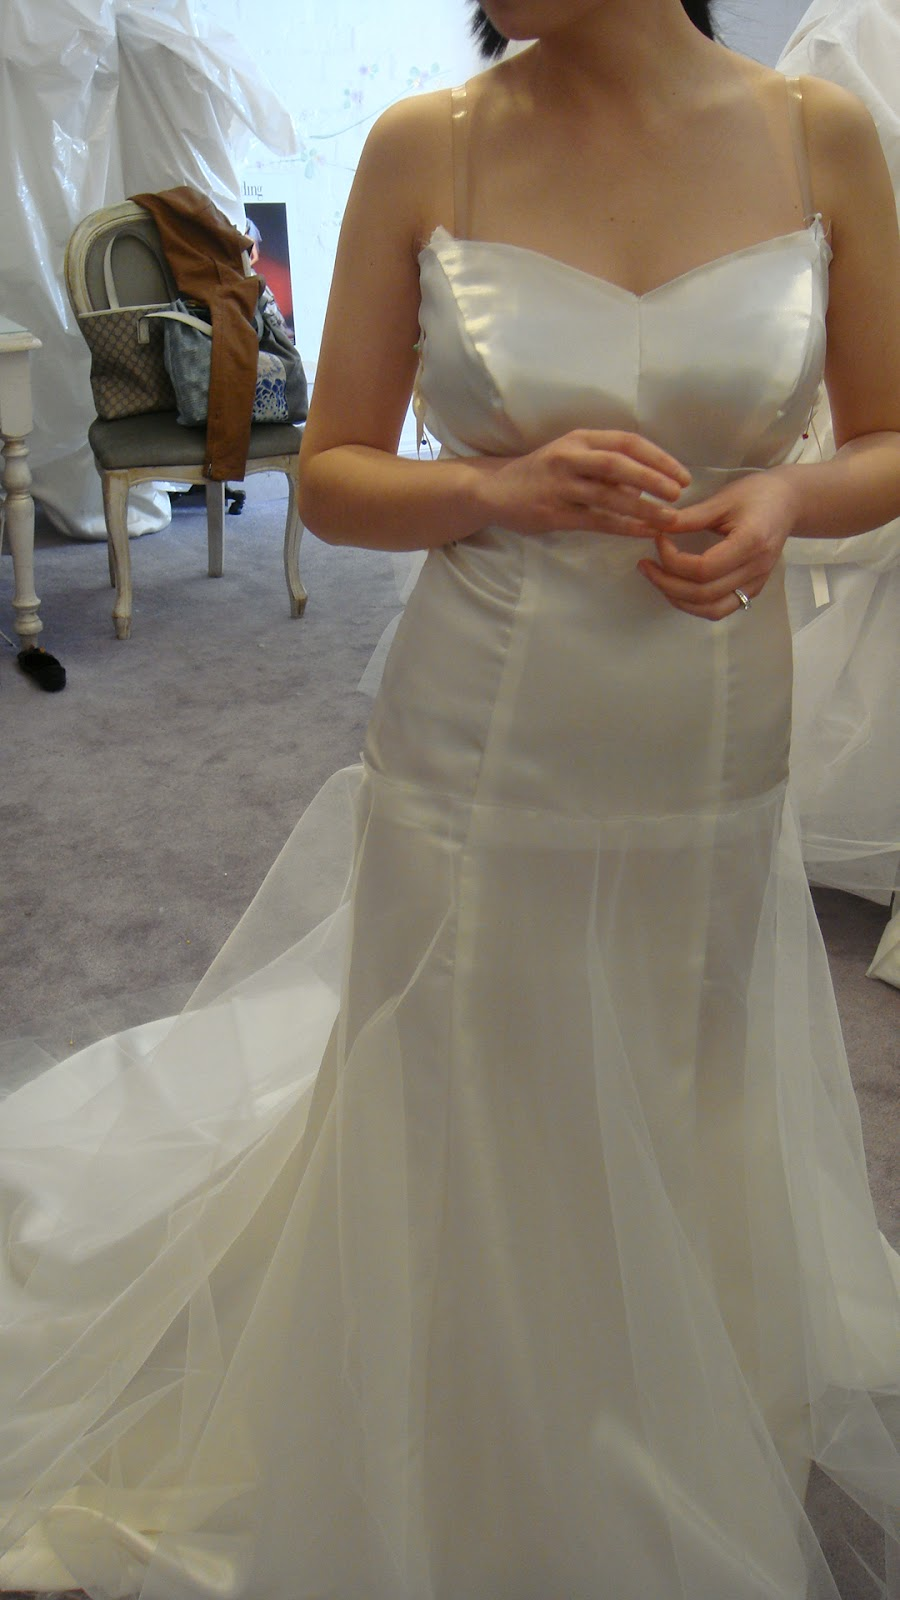 Wedding Dress 2nd Ing I Was Delighted To Finally Go For My This Second Involves Me Trying On The Calico Or Toile Which Is A